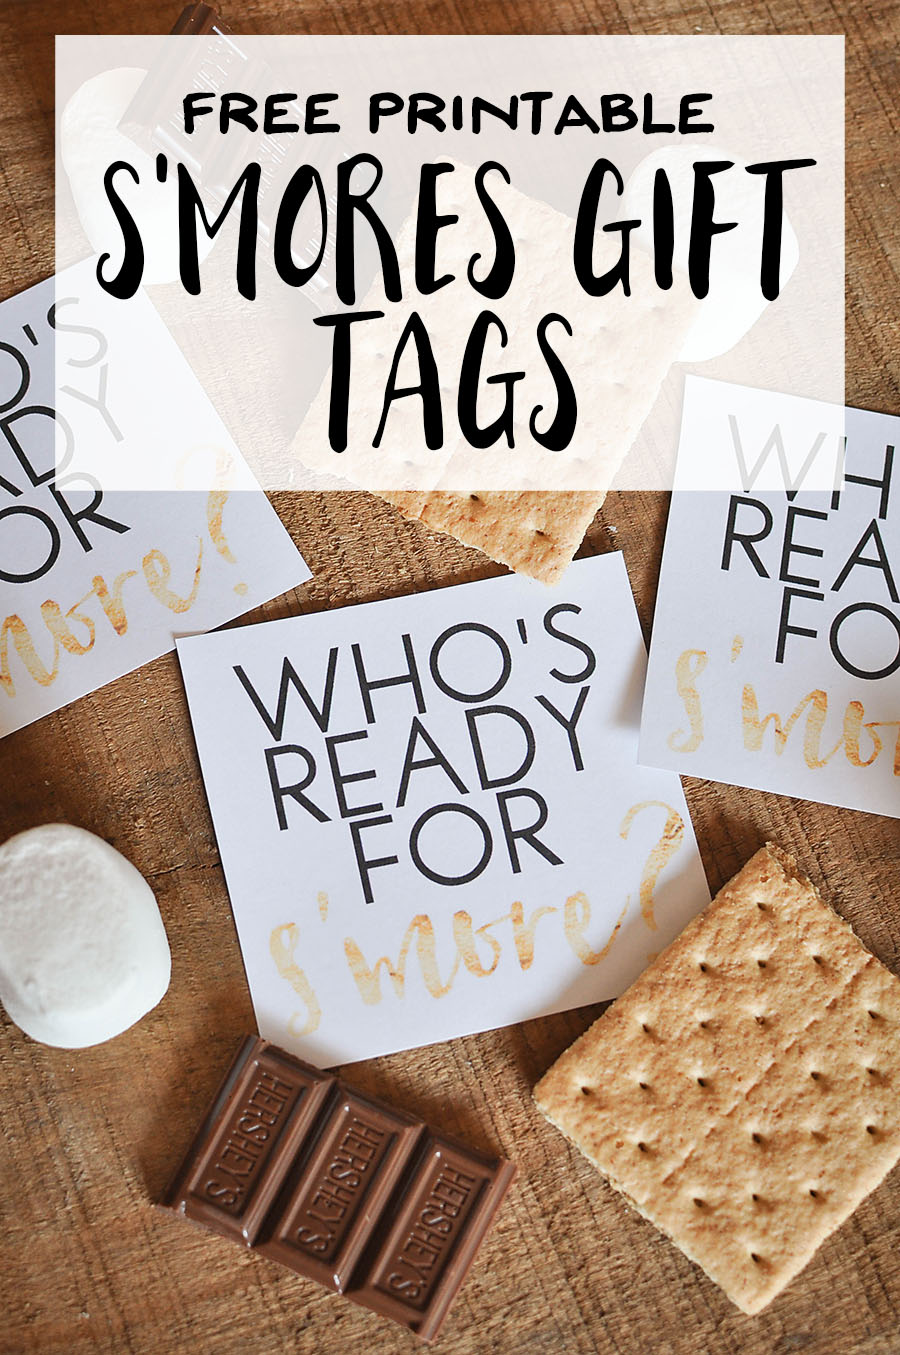 Free printable smores gift tags our handcrafted life free printable smores gift tags negle Images